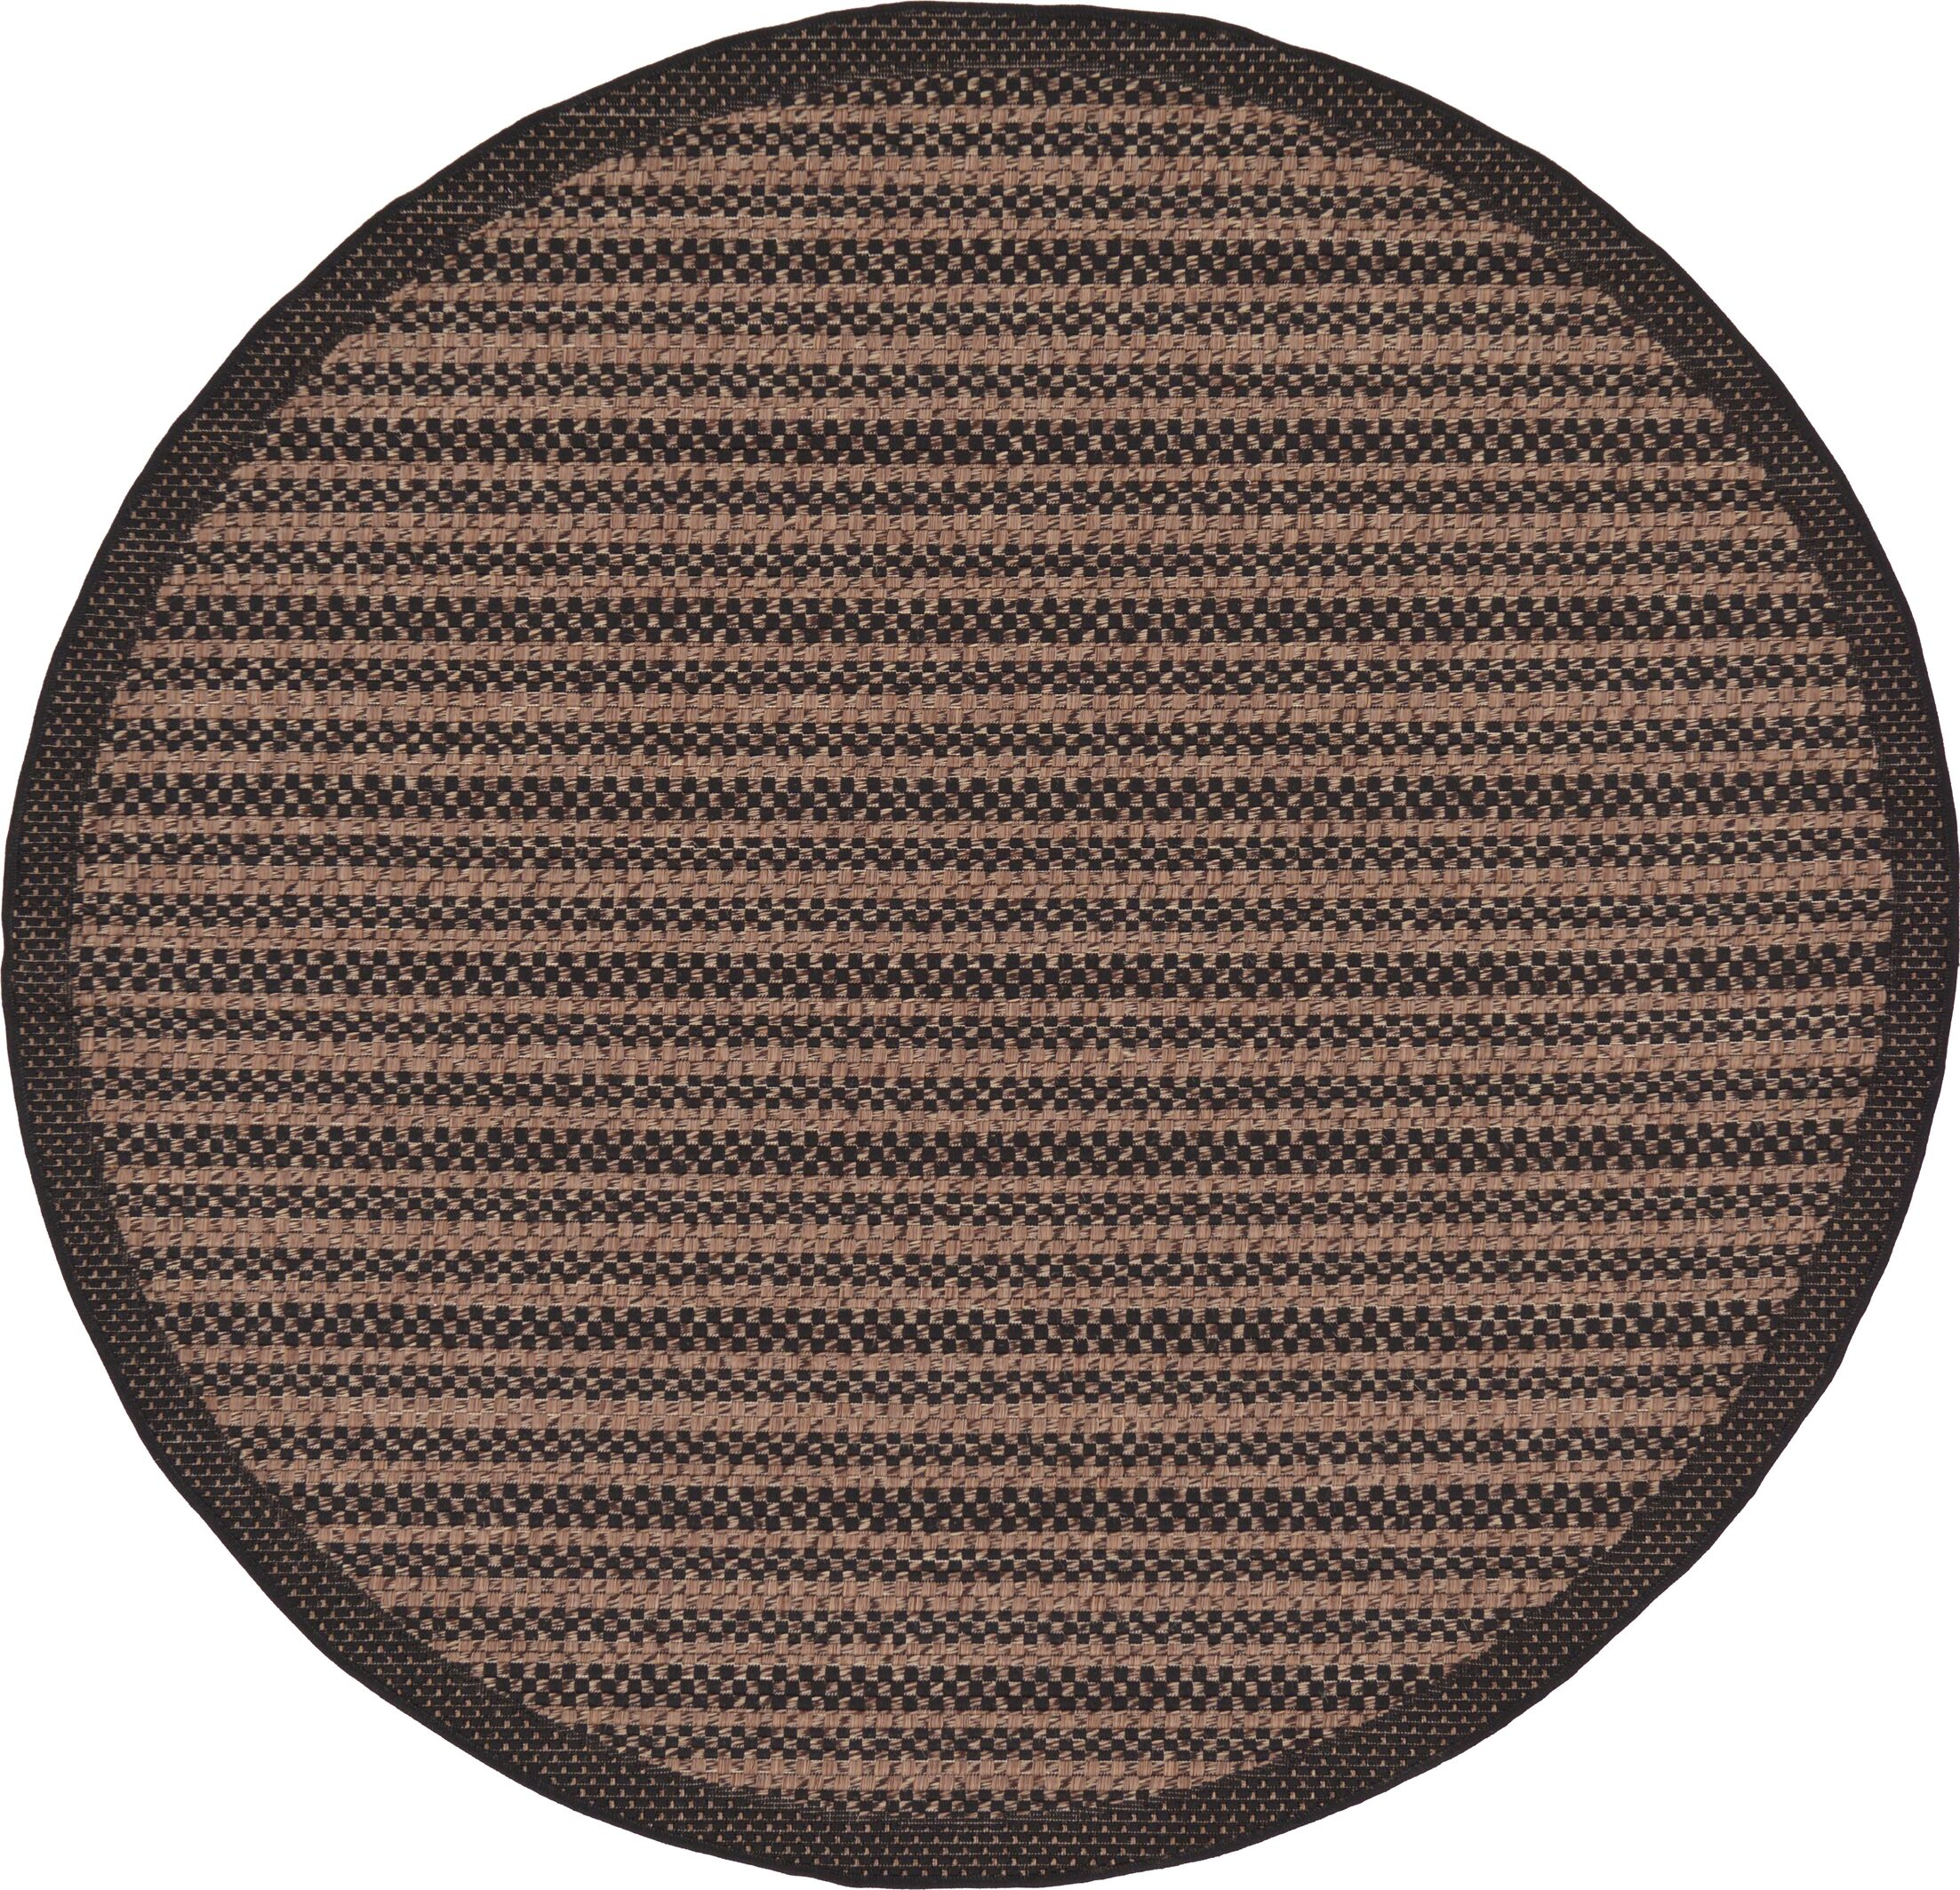 Cher Brown Outdoor Area Rug Rug Size: Round 6'